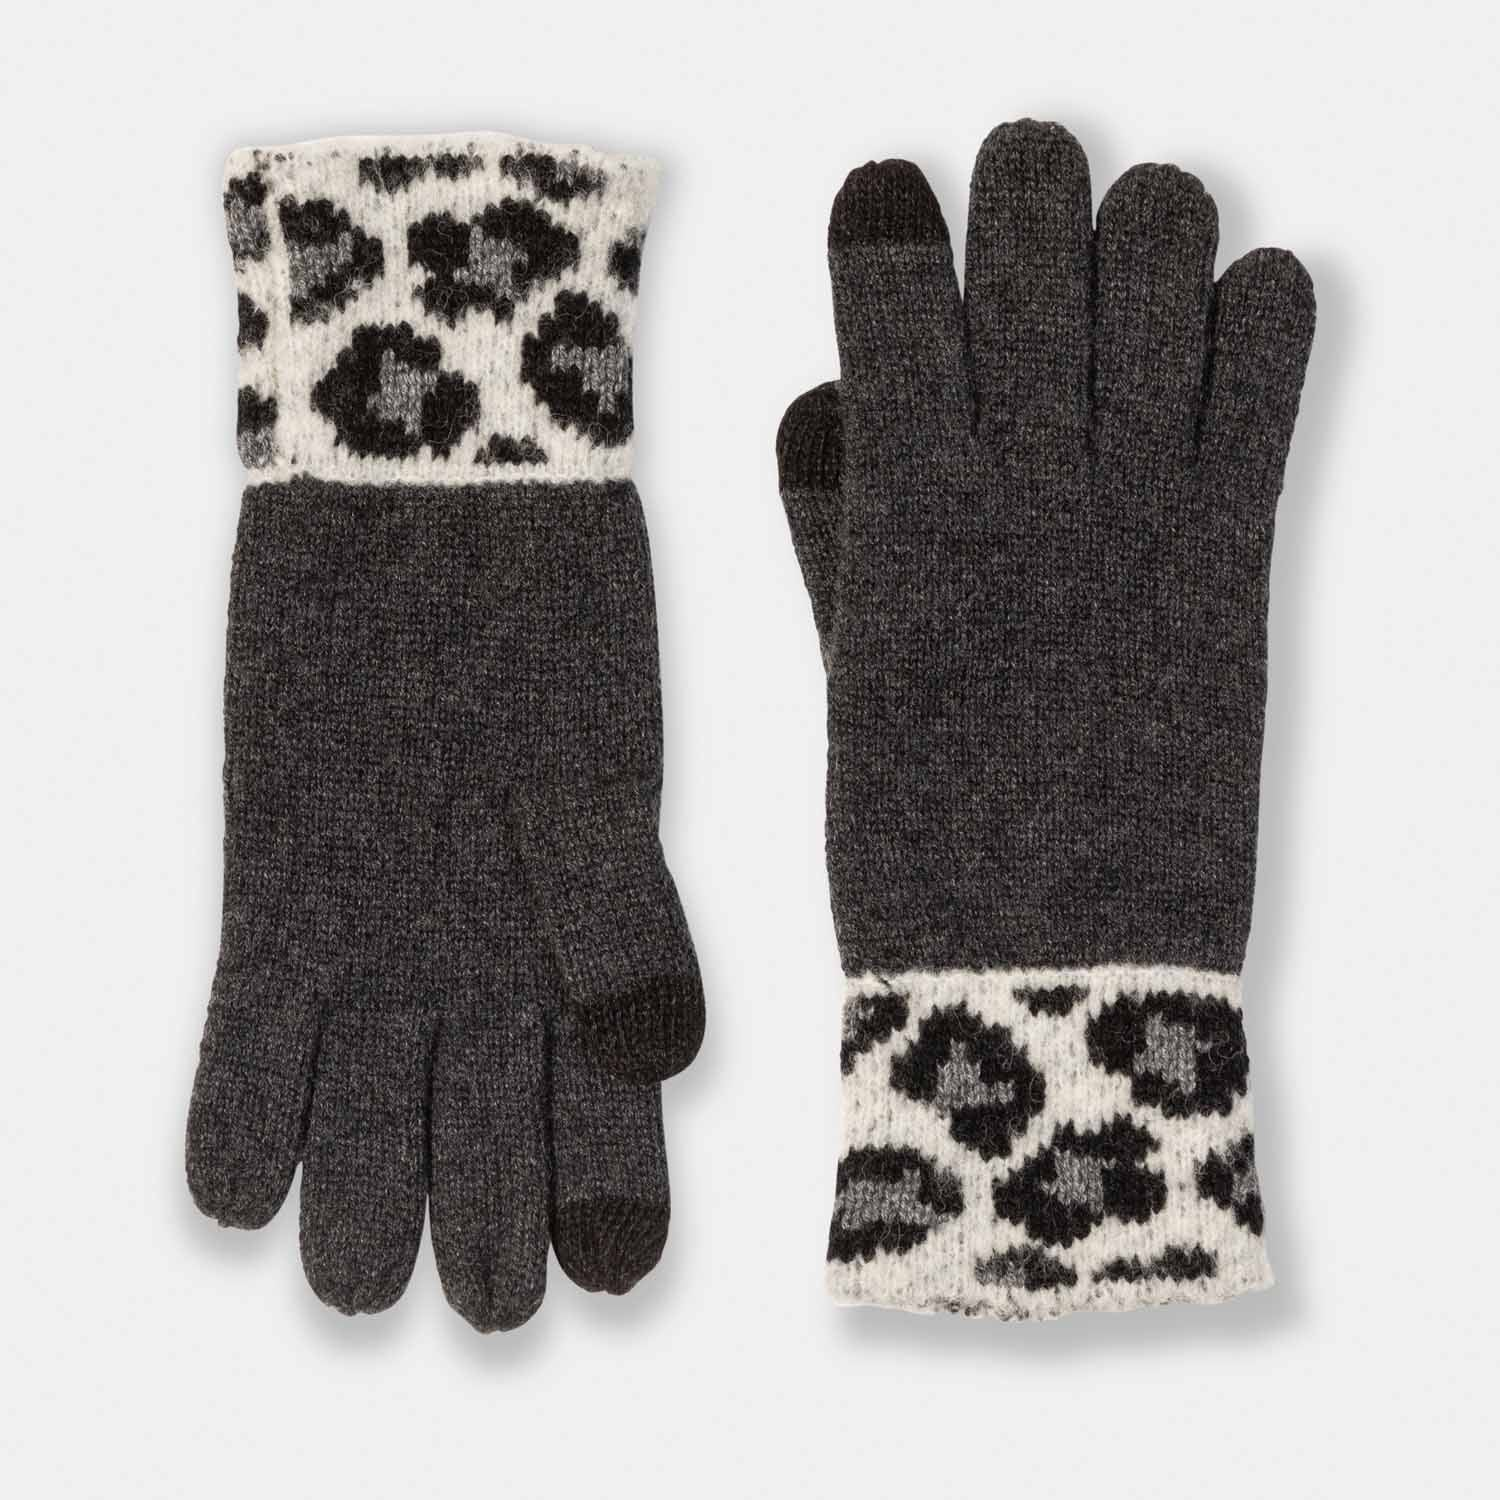 Cashmere Gloves with Cheetah Cuffs-Amicale Cashmere